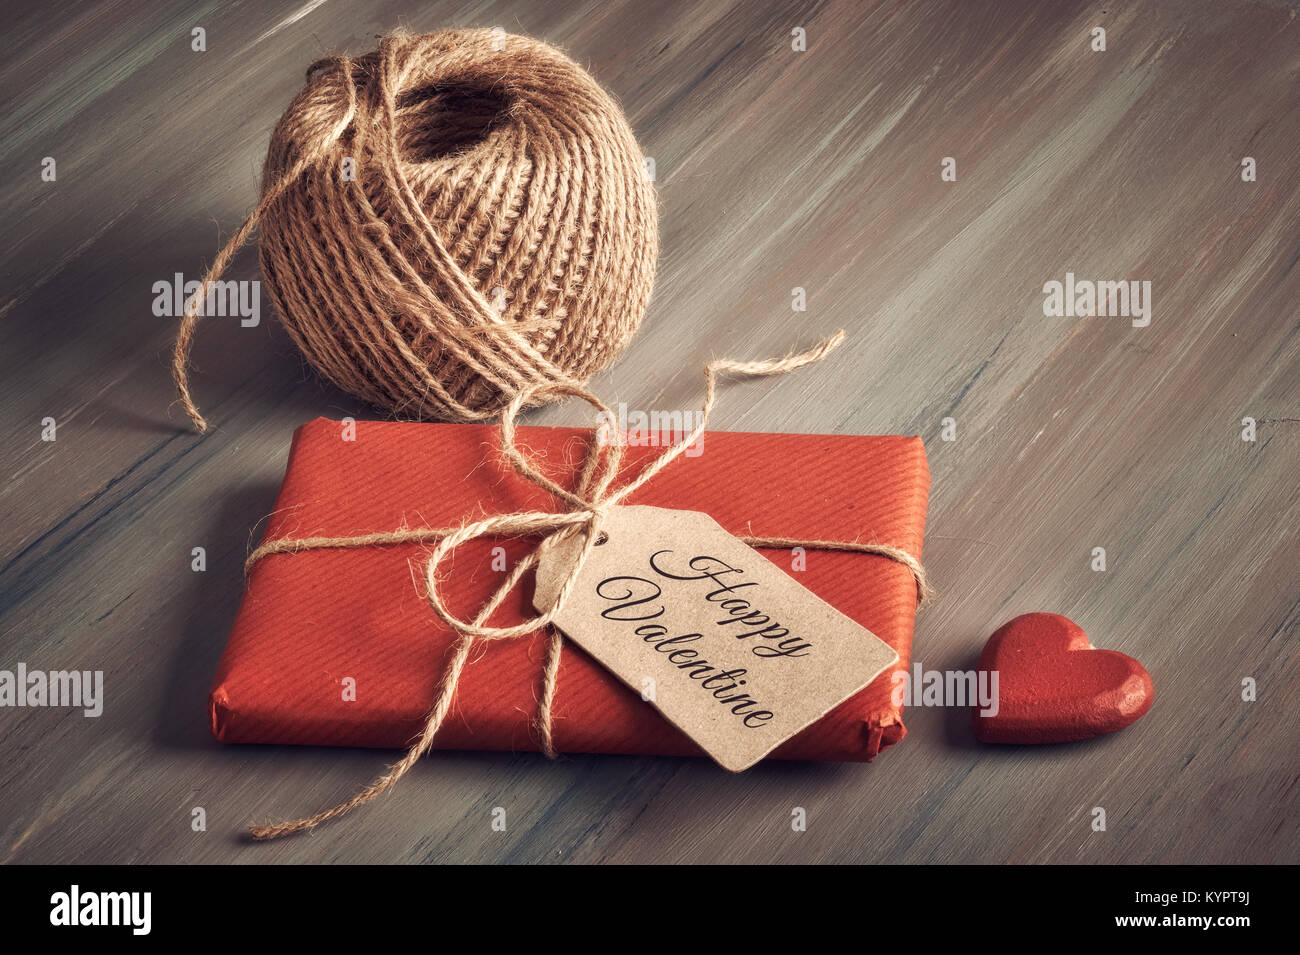 Wrapped gift tied up with cord, cardboard tag with text 'Happy Valentine' and a wooden heart on rustic wooden - Stock Image